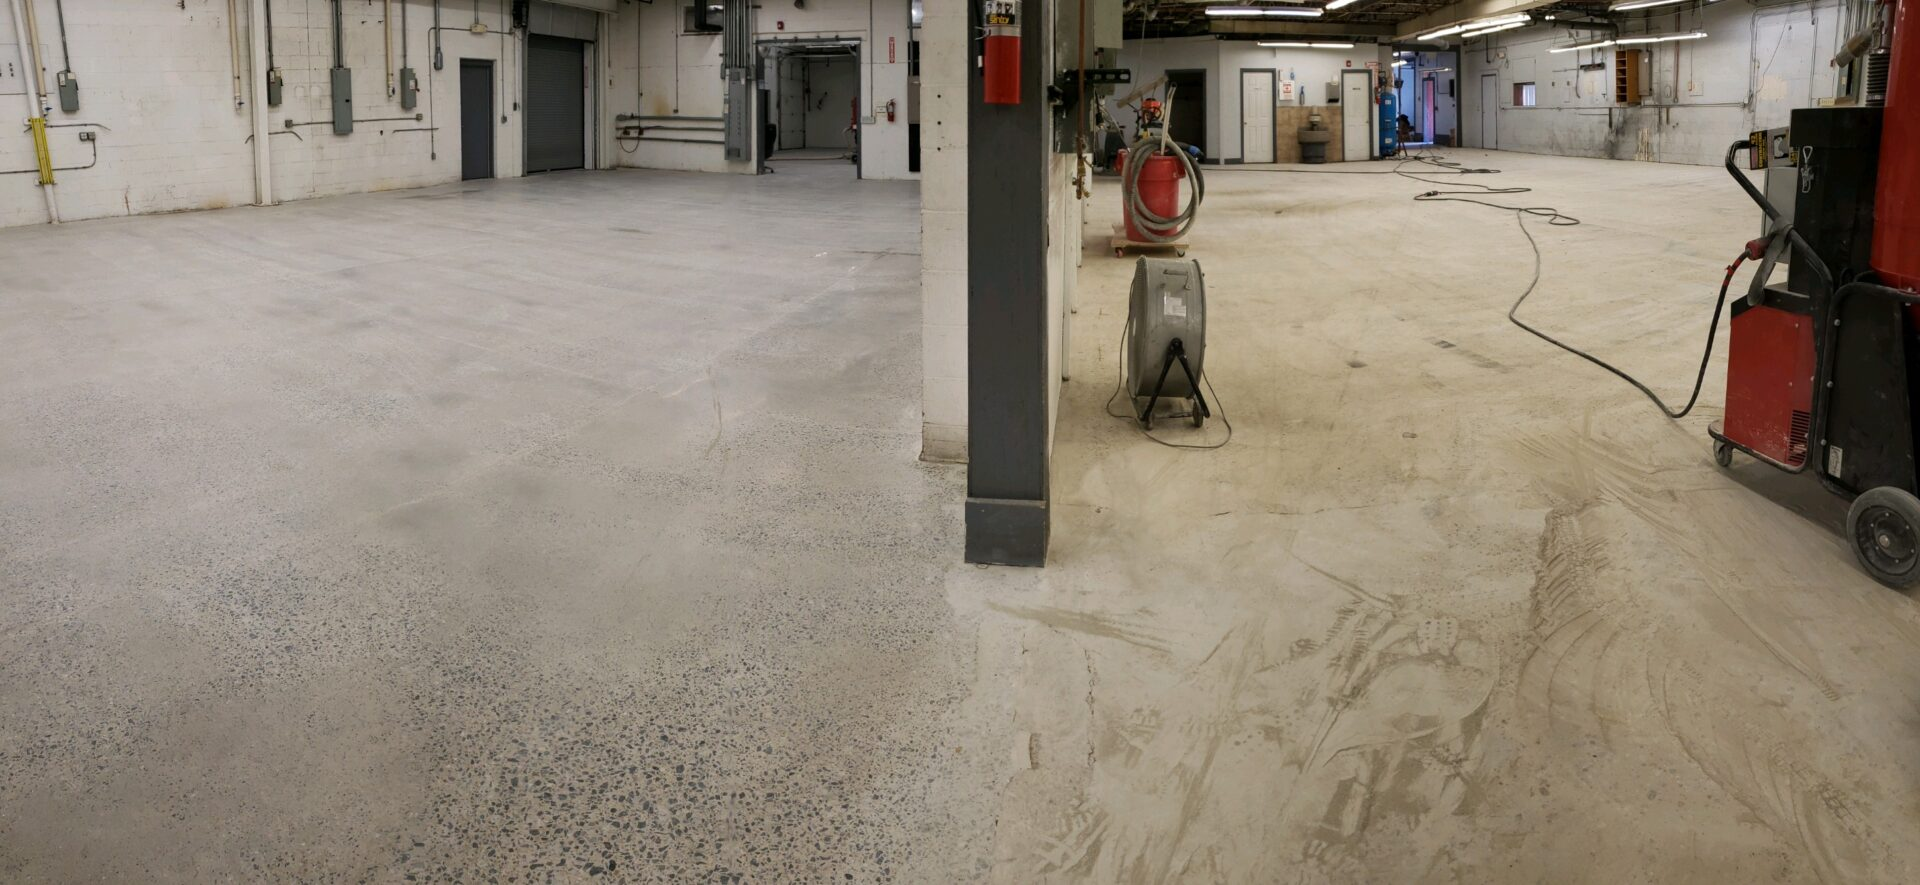 The Reliance team worked on a 10,000 square foot industrial space. The floors we began with had multiple layers of epoxy and paint. We see this commonly as epoxy and paint are often applied over existing floor surfaces. When we got down to the bare floor, we were able to give it a full warehouse polish and burnish. With the application of a densifier, the finished surface was harder and much easier to maintain, not to mention very attractive.